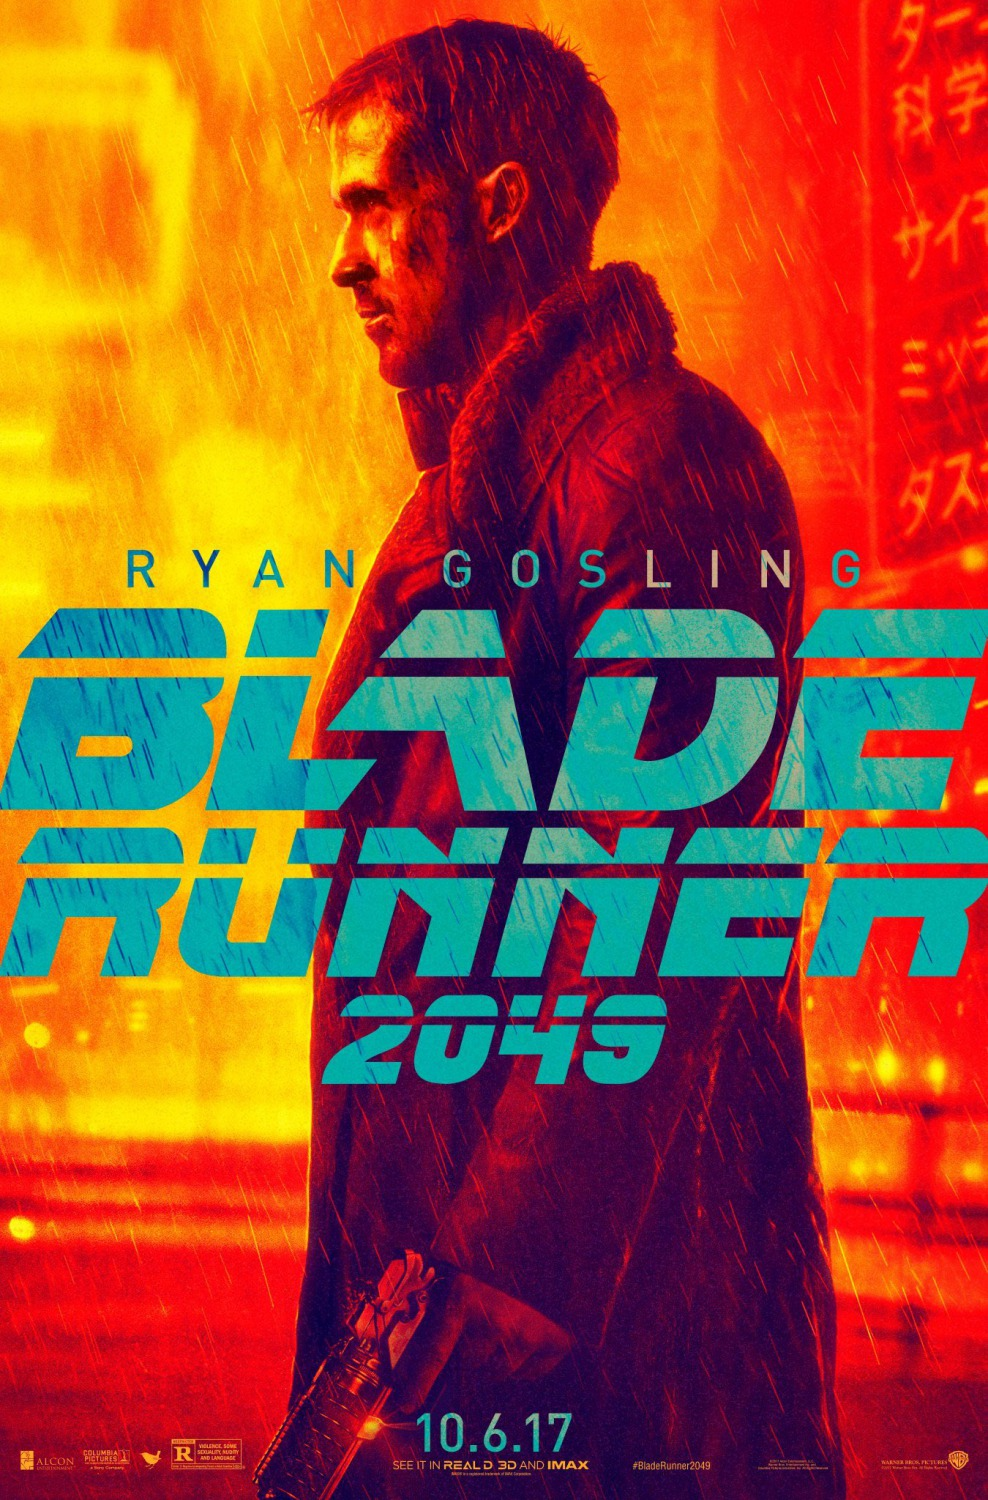 blade_runner_twenty_forty_nine_ver6_xlg